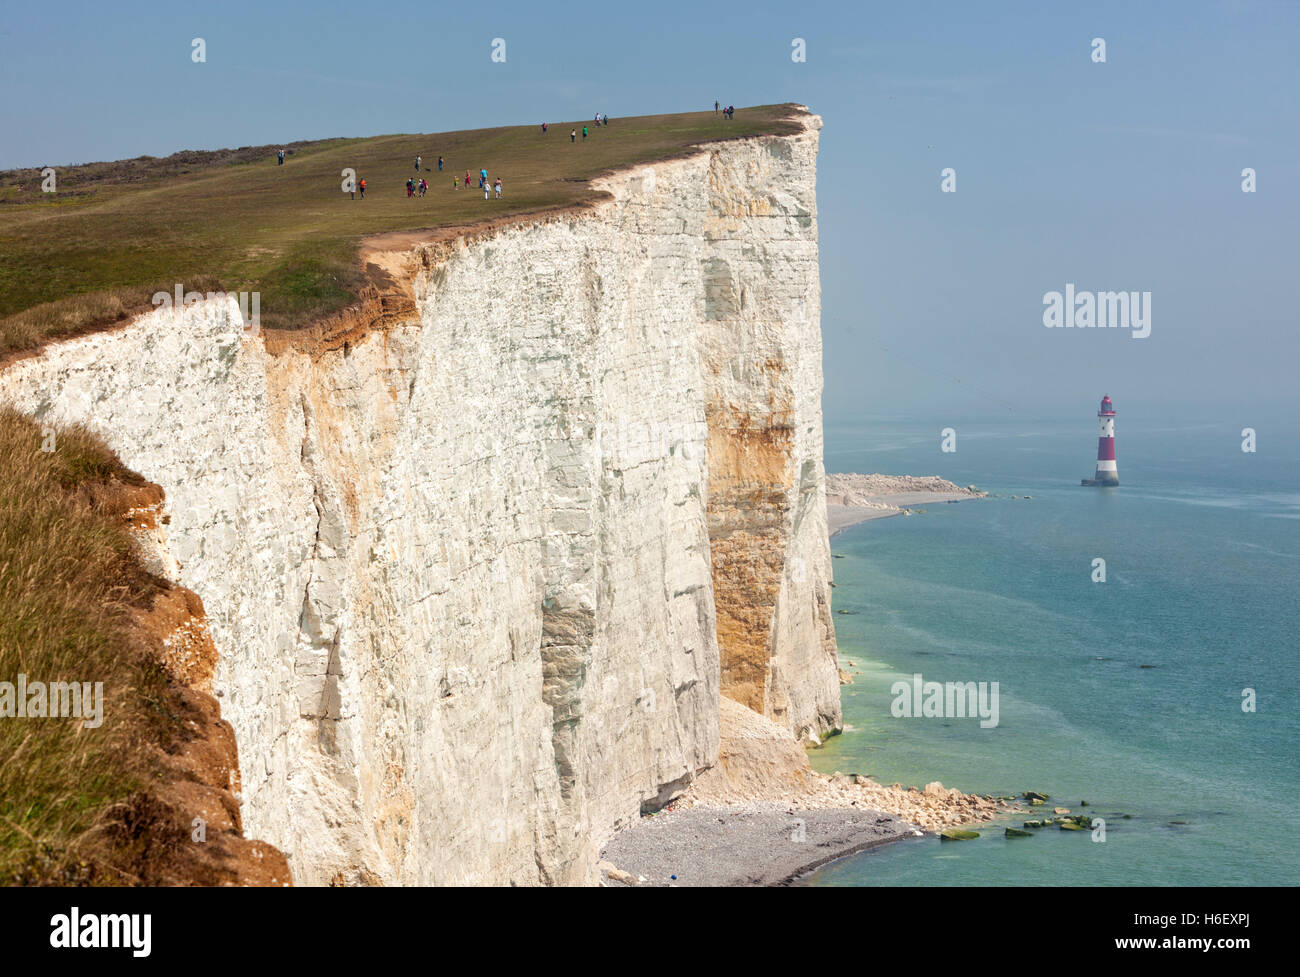 Beachy Head cliffs and lighthouse, East Sussex, on a hazy day - Stock Image